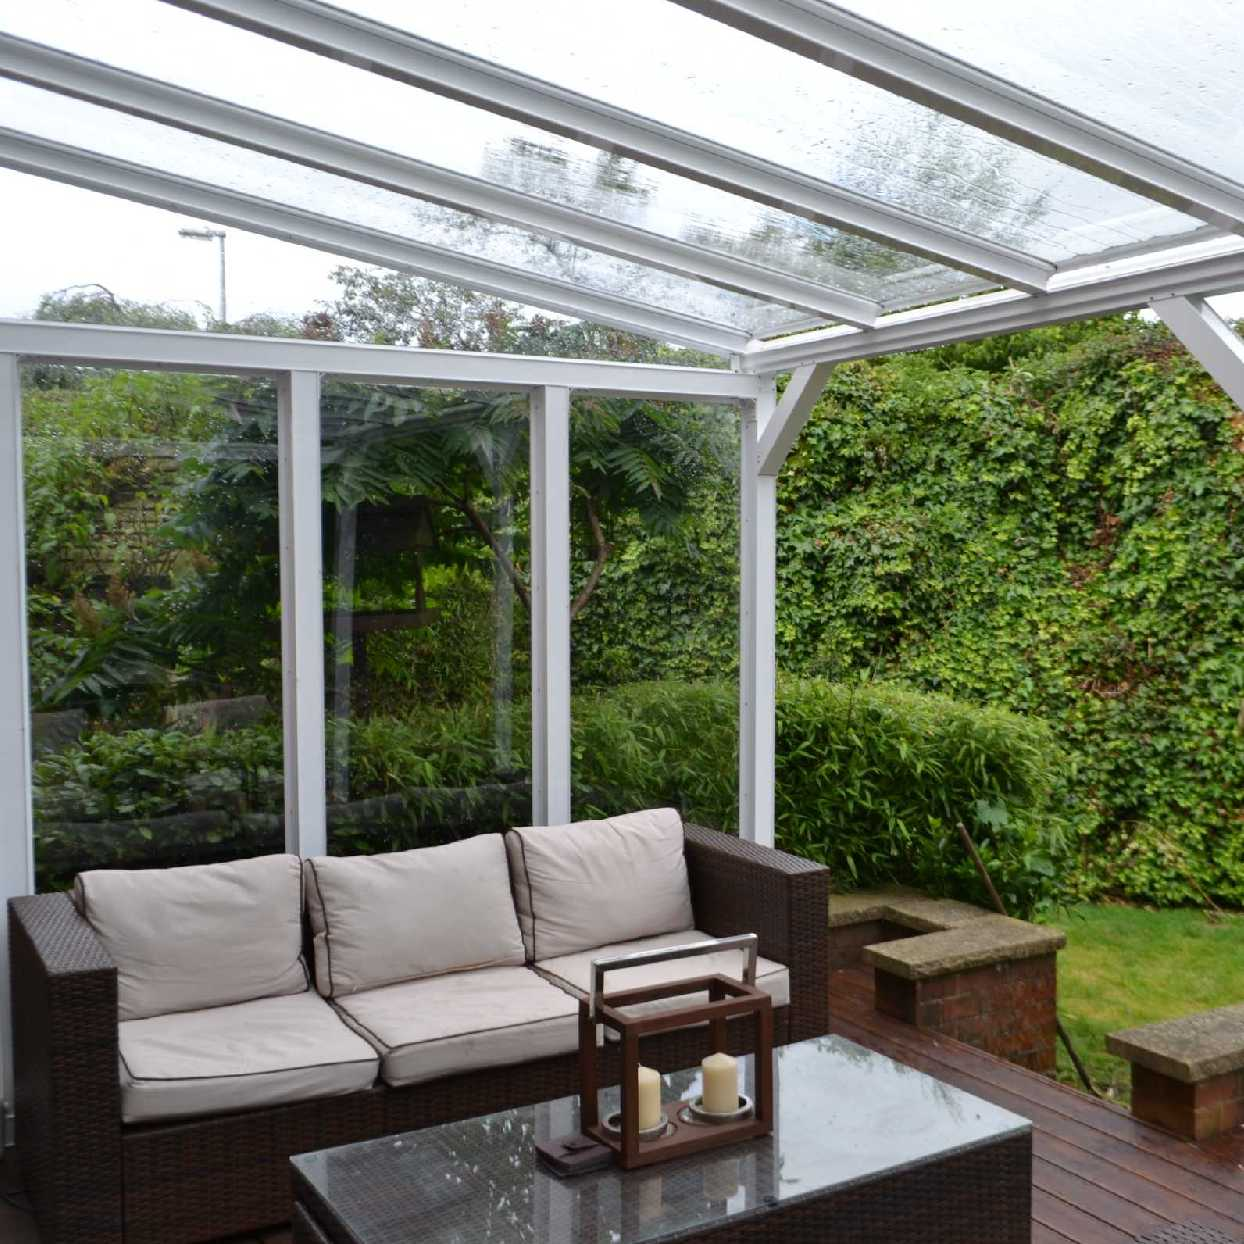 Omega Smart Lean-To Canopy with 6mm Glass Clear Plate Polycarbonate Glazing - 9.8m (W) x 3.5m (P), (5) Supporting Posts